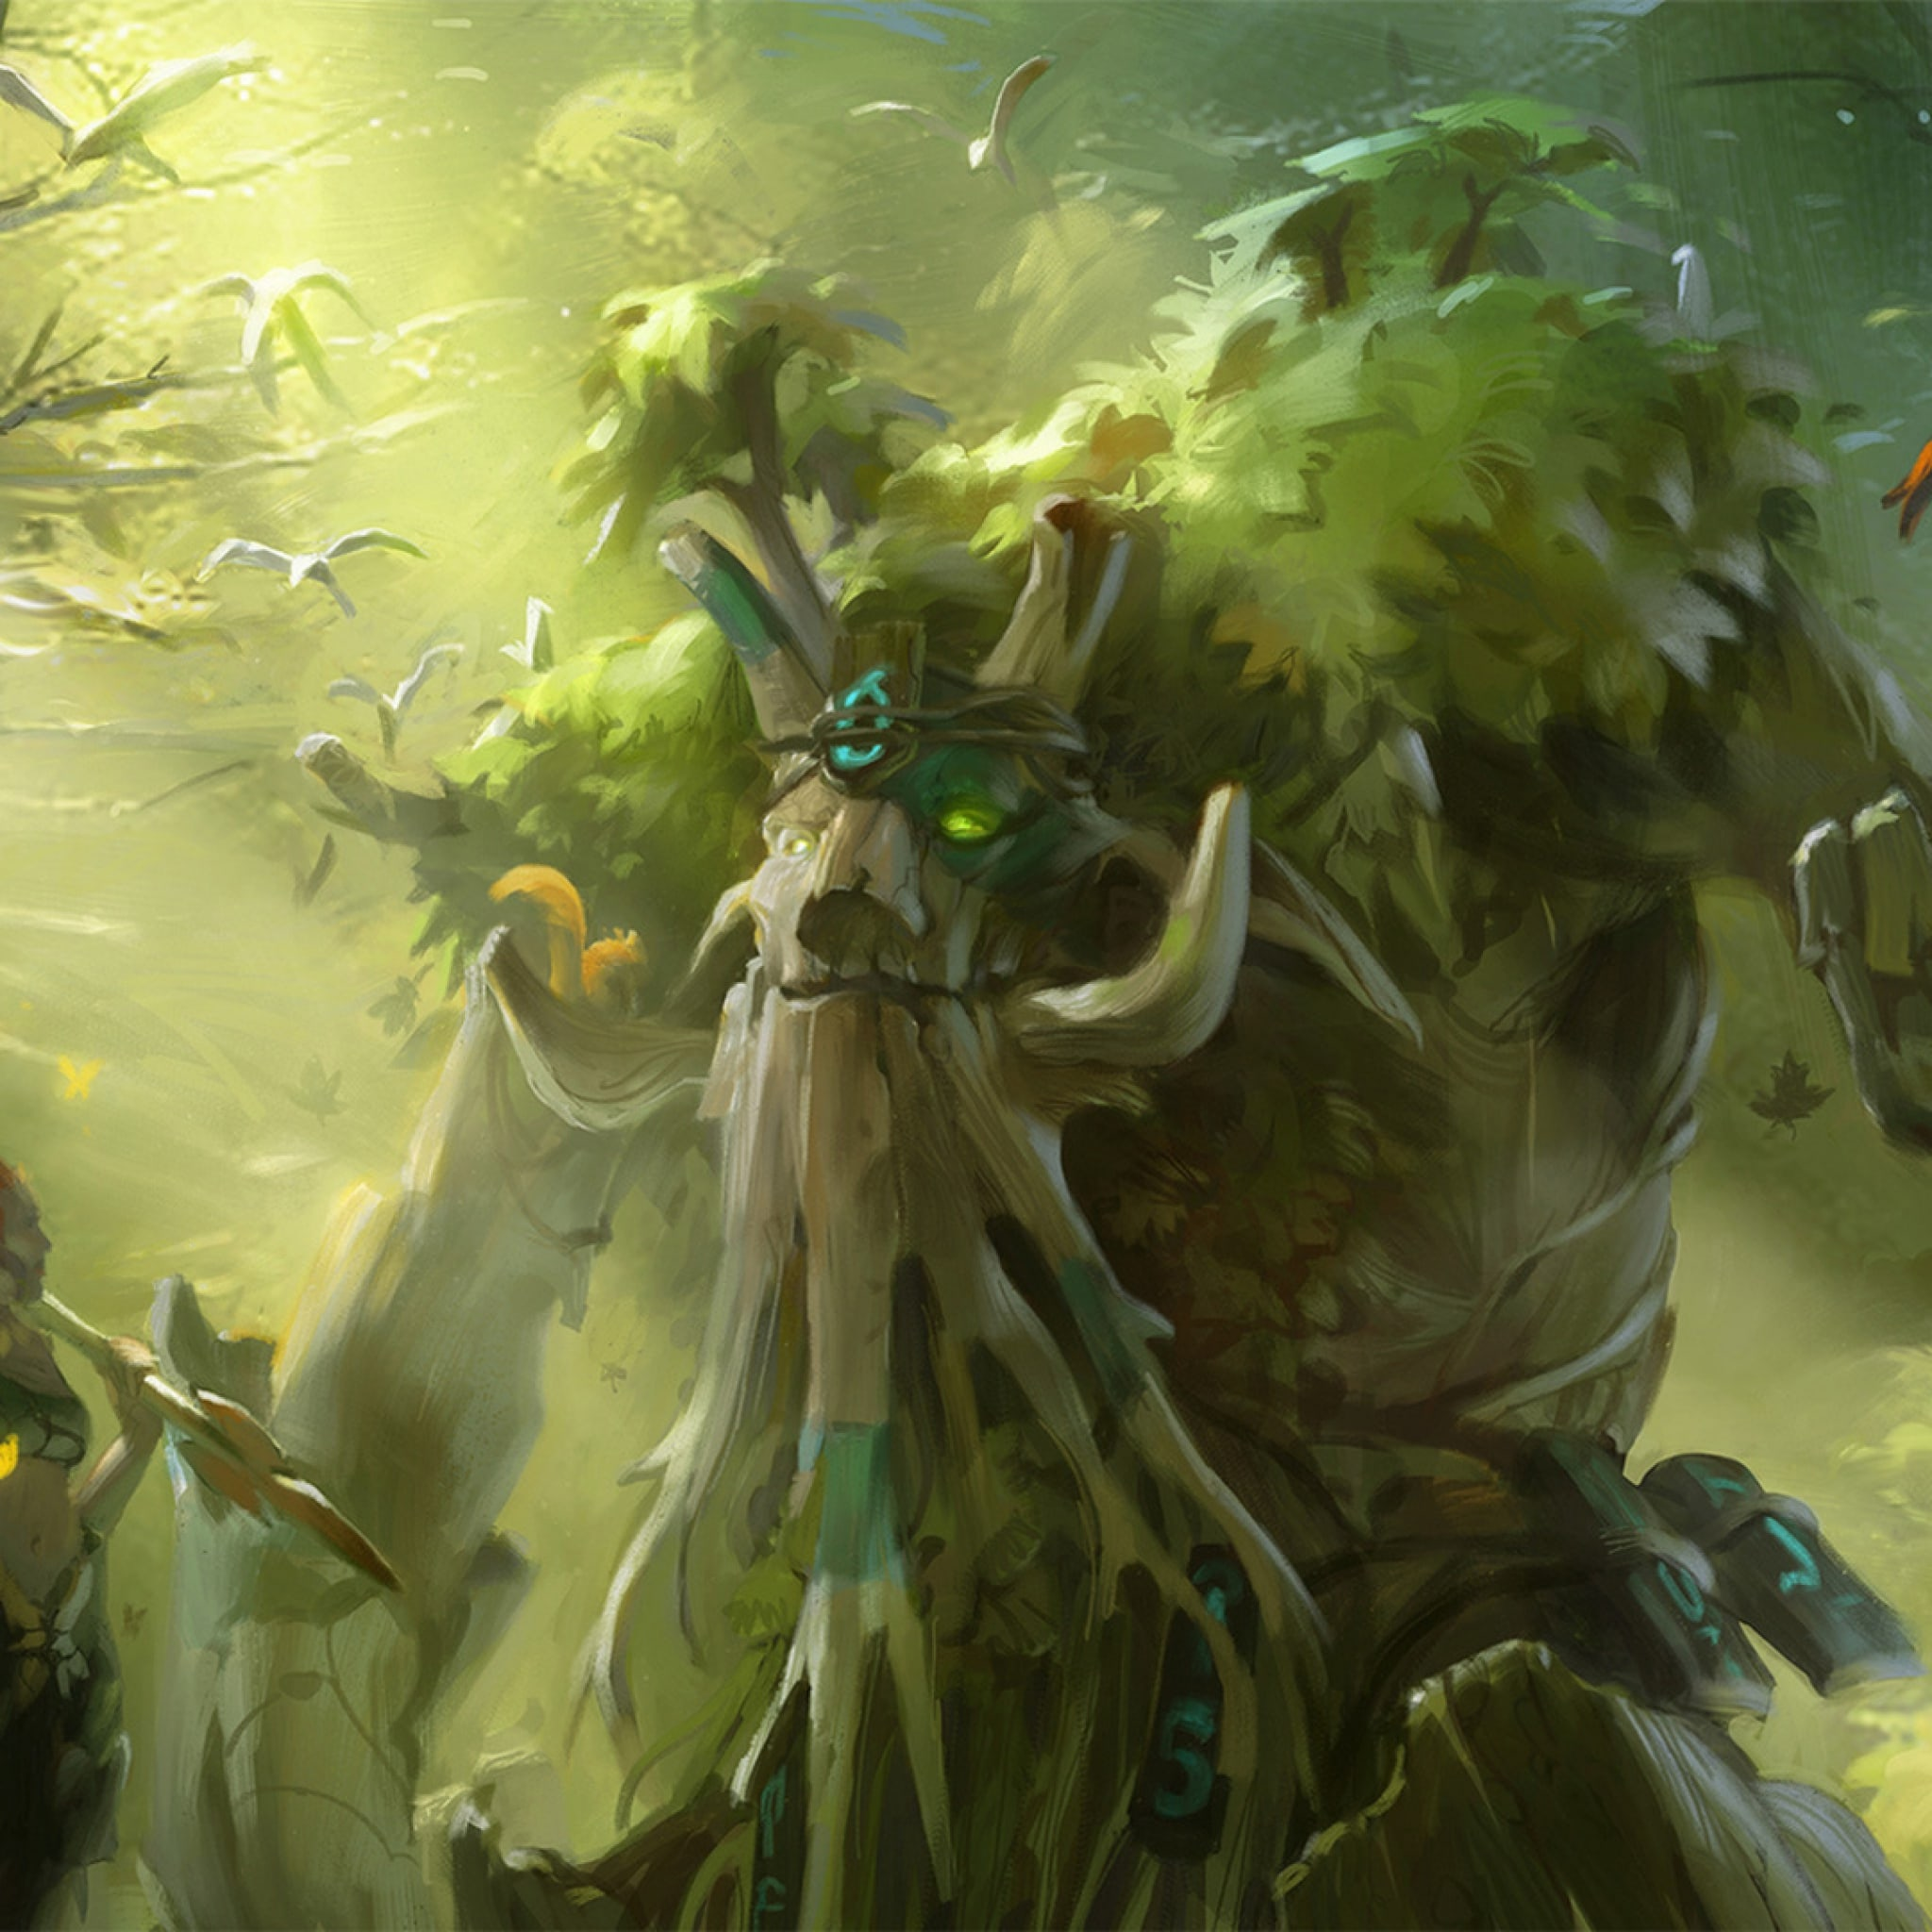 Dota2 : Treant Protector full hd wallpapers